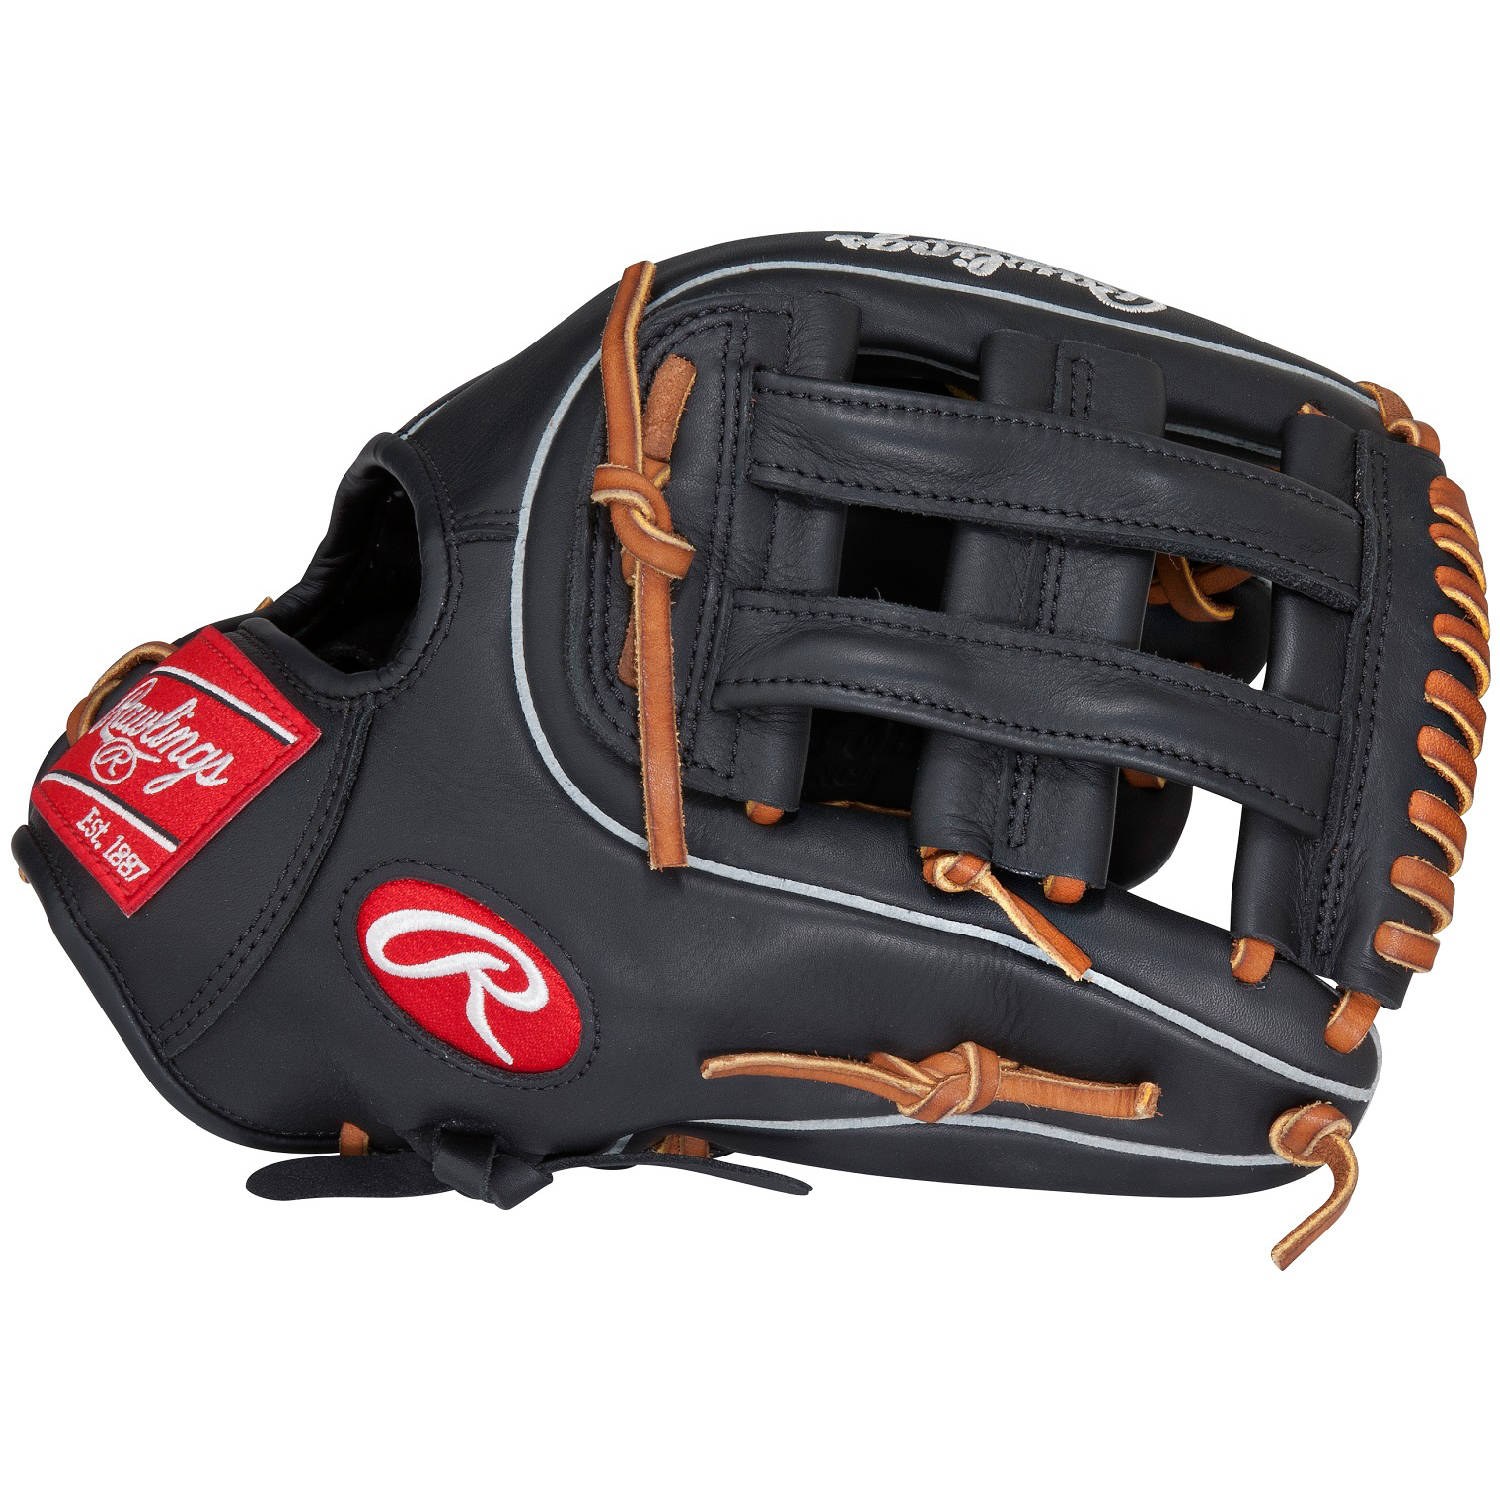 "Rawlings 11.75"" Gamer Series Infield Baseball Glove, Right Hand Throw"